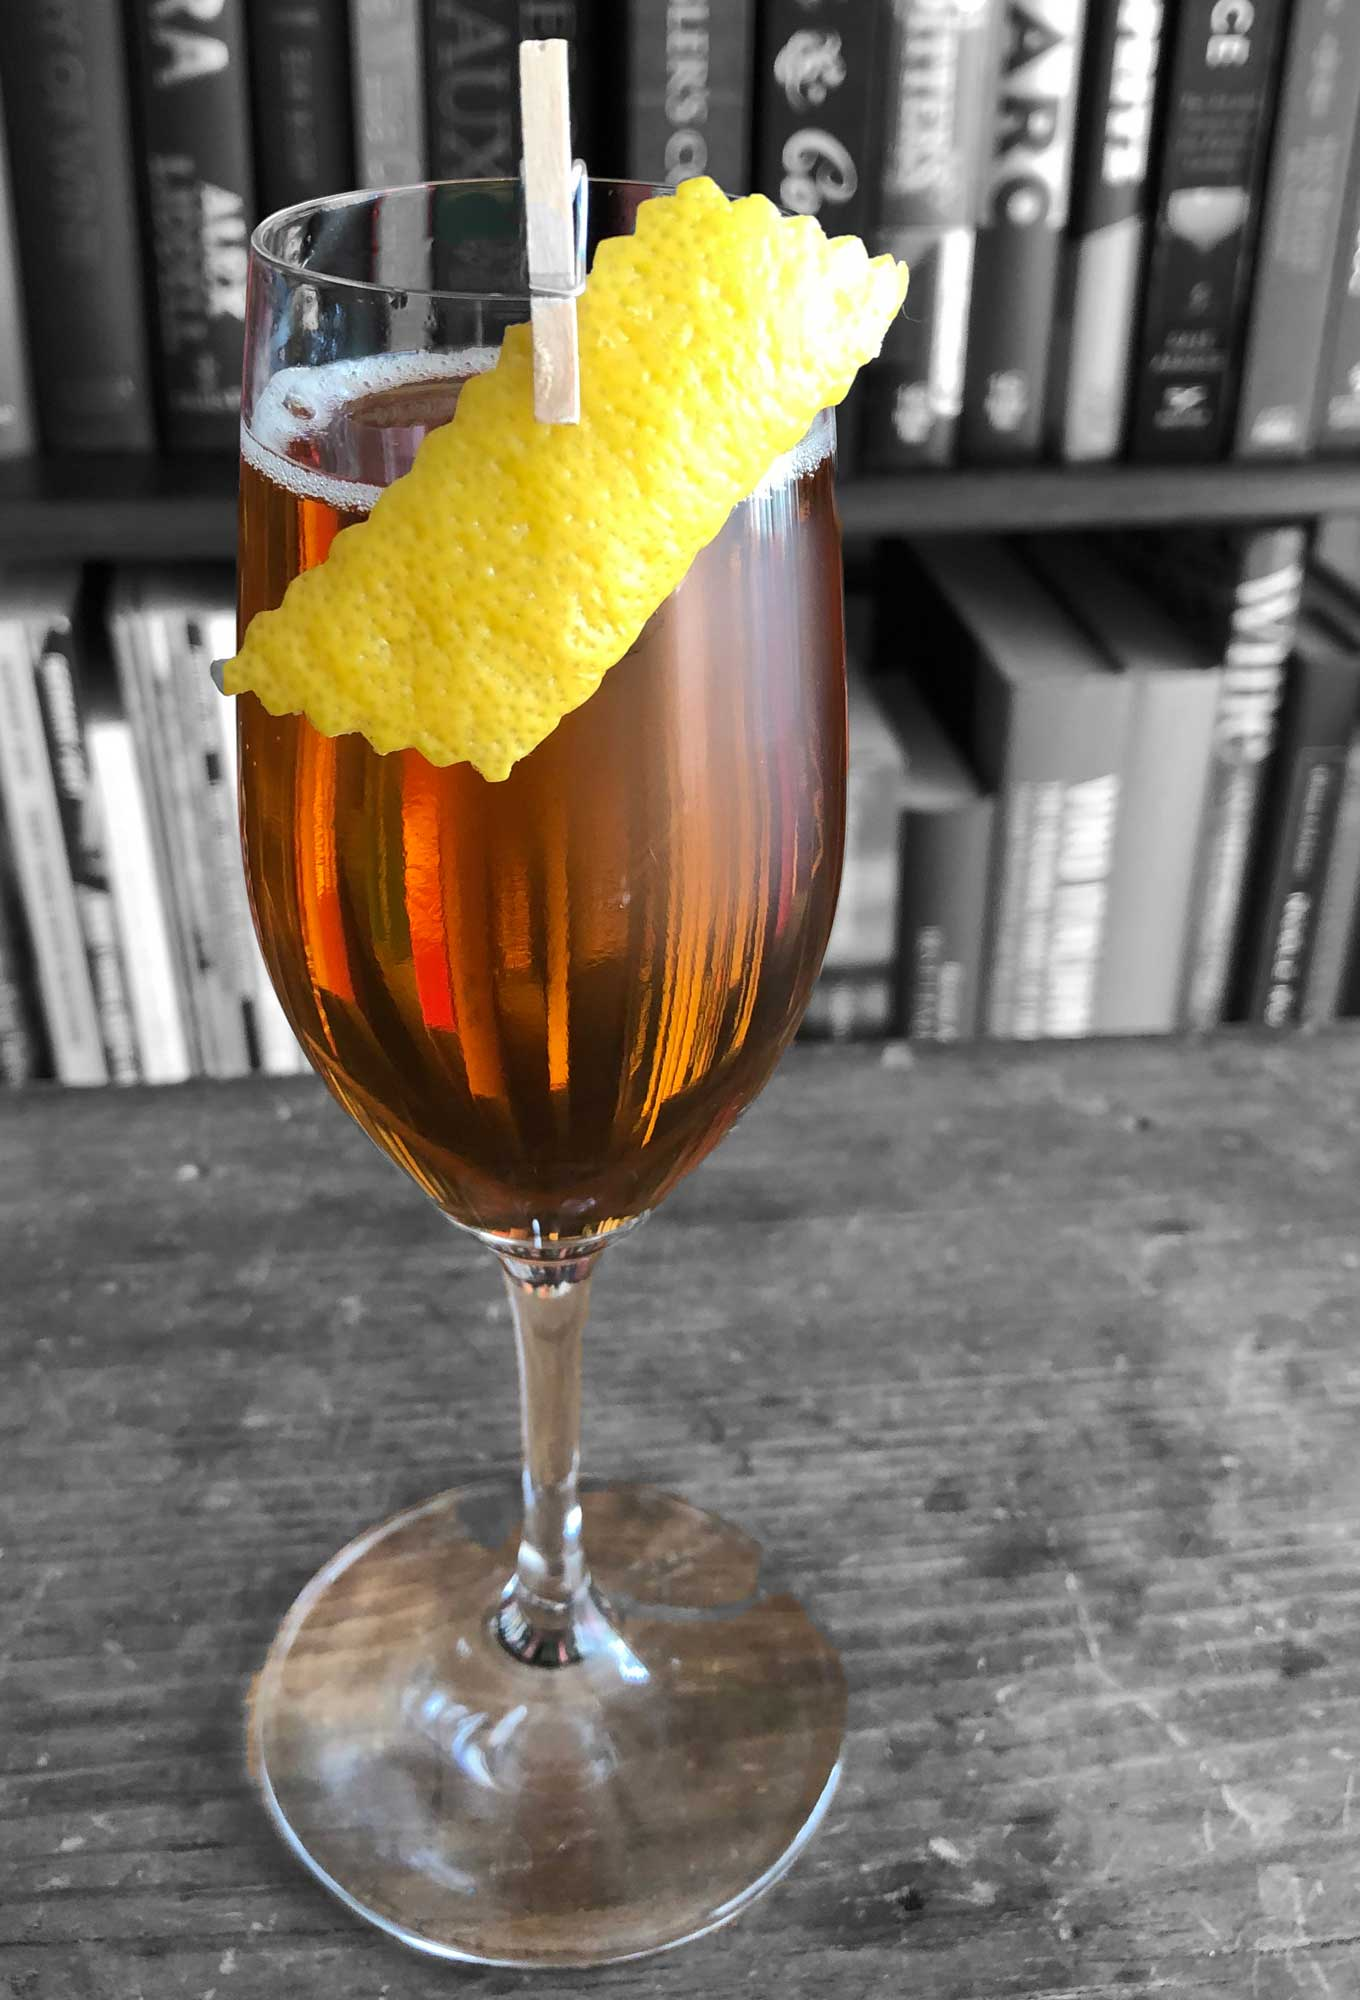 An example of the Daisy Buchanan, the mixed drink (daisy), by Andrew Hotis, Heirloom, New Haven, CT, featuring sparkling wine, calvados, and Rothman & Winter Orchard Pear Liqueur; photo by Lee Edwards